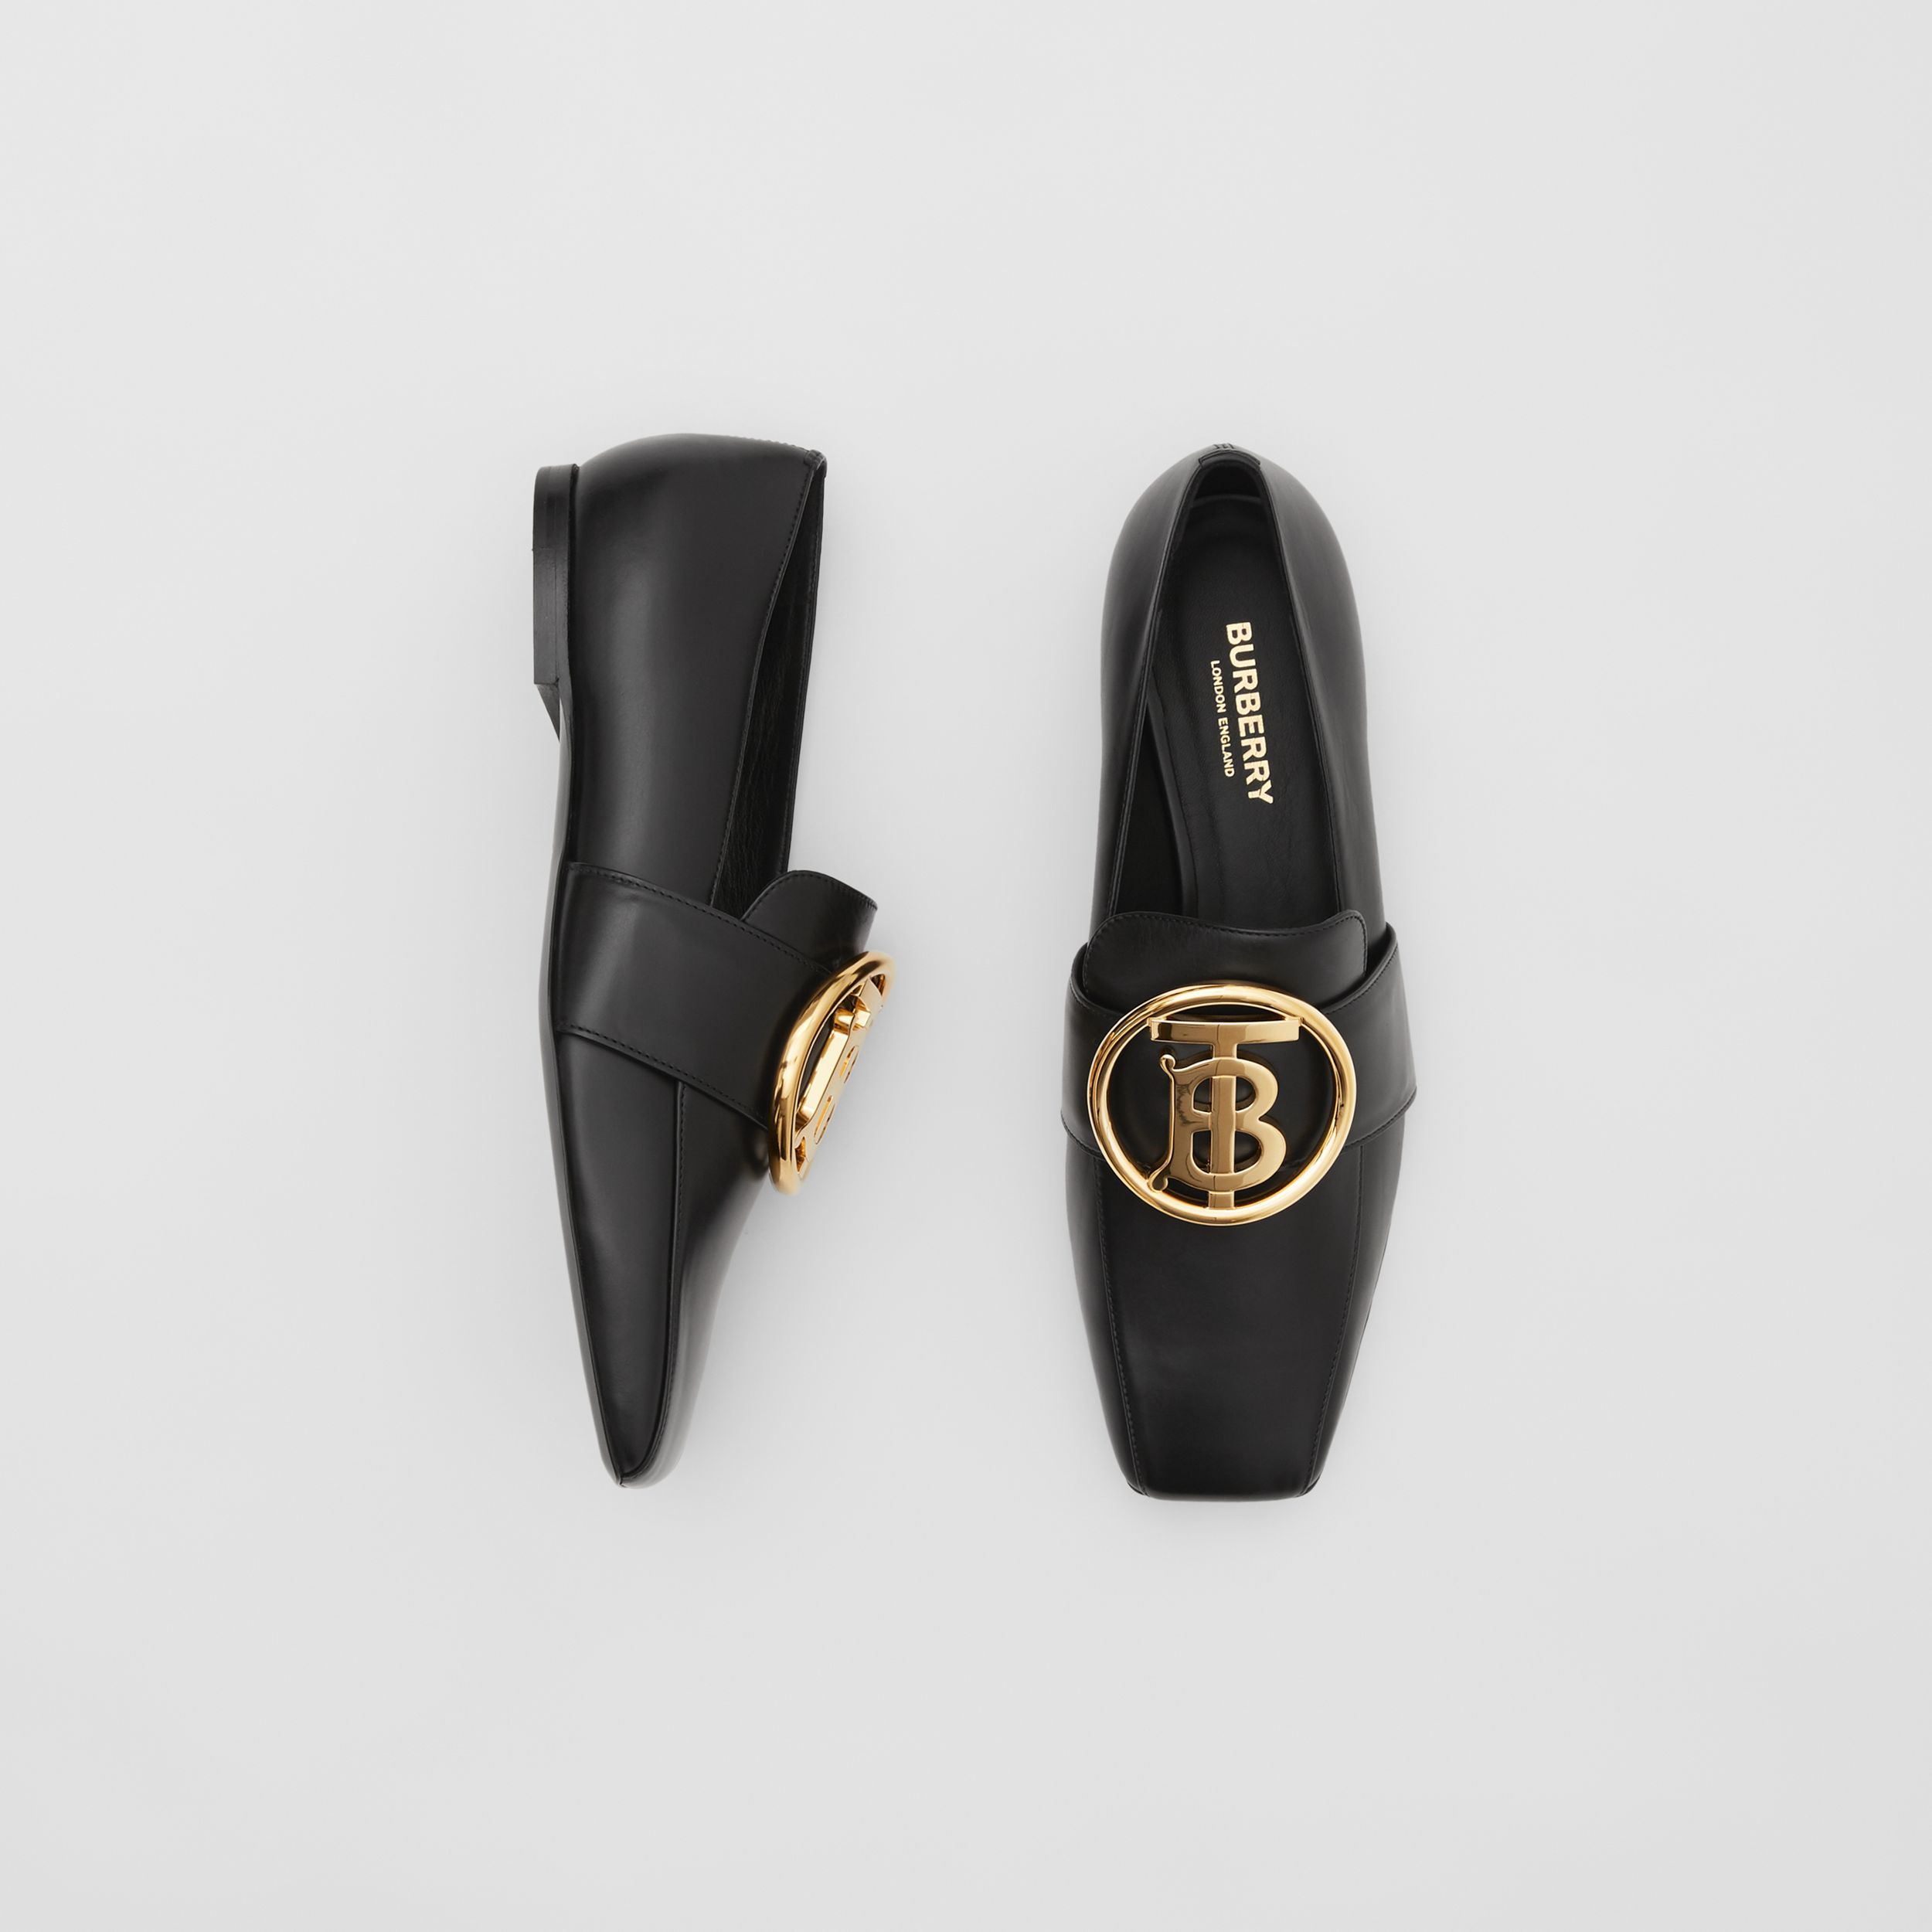 Monogram Motif Leather Loafers in Black - Women | Burberry United States - 1